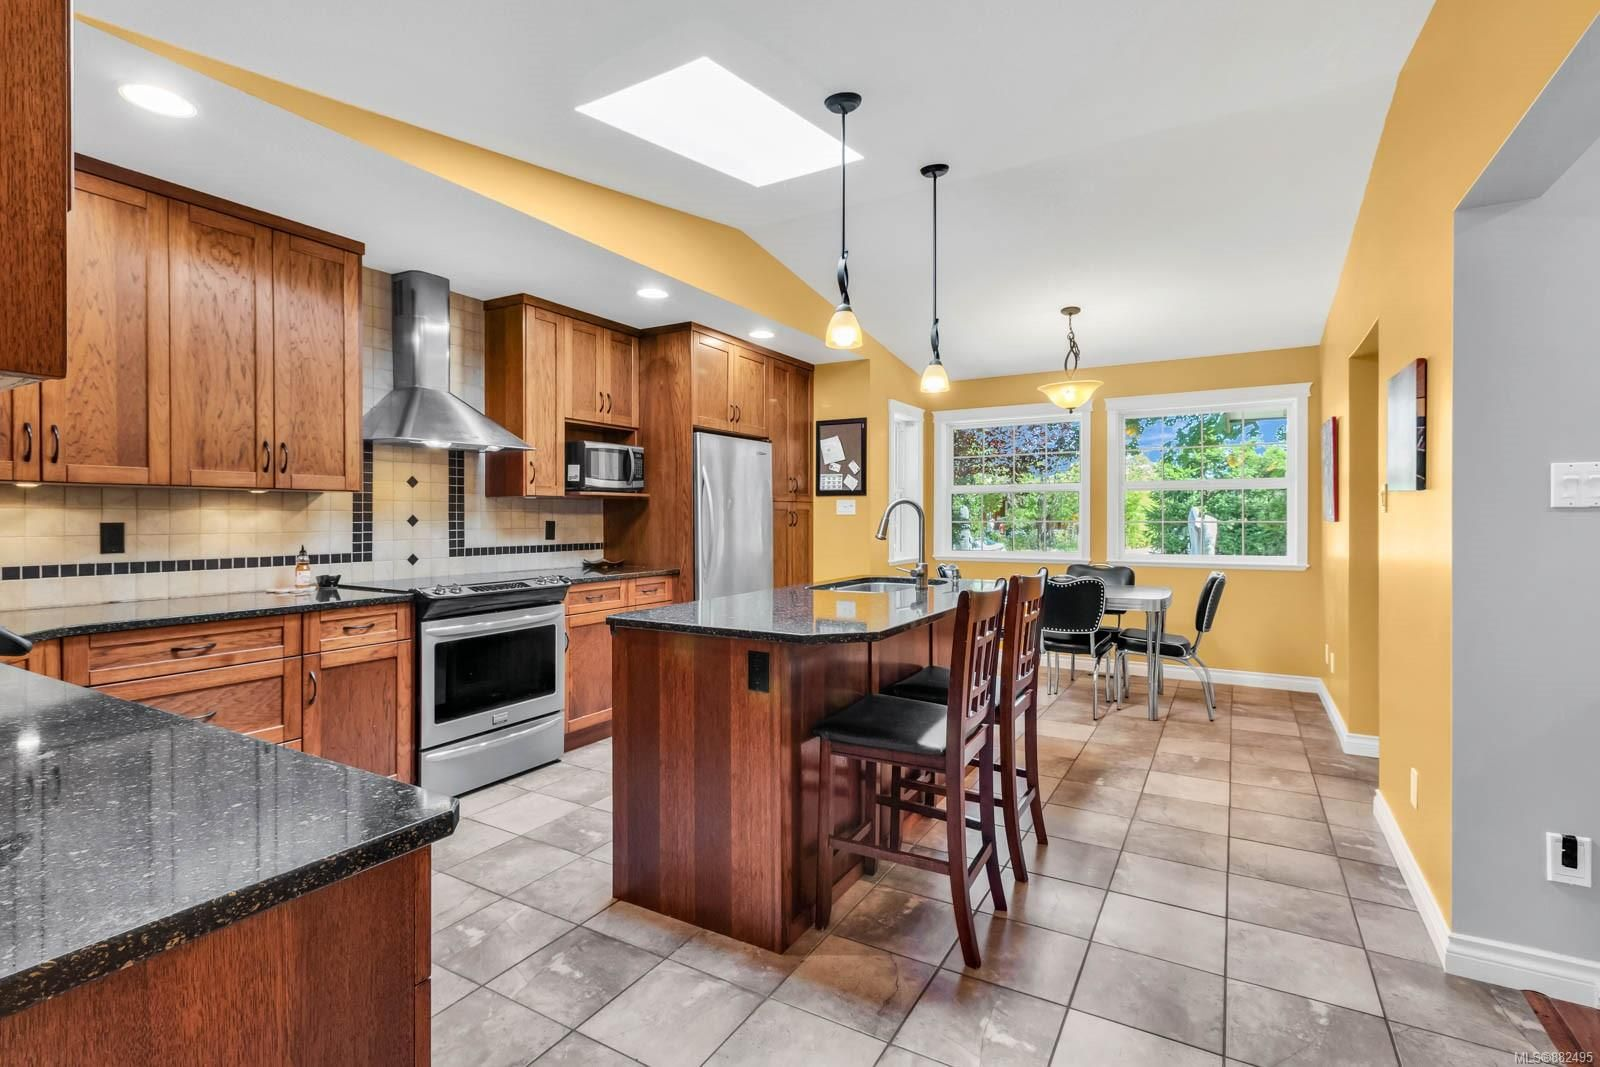 Photo 13: Photos: 375 Butchers Rd in : CV Comox (Town of) House for sale (Comox Valley)  : MLS®# 882495